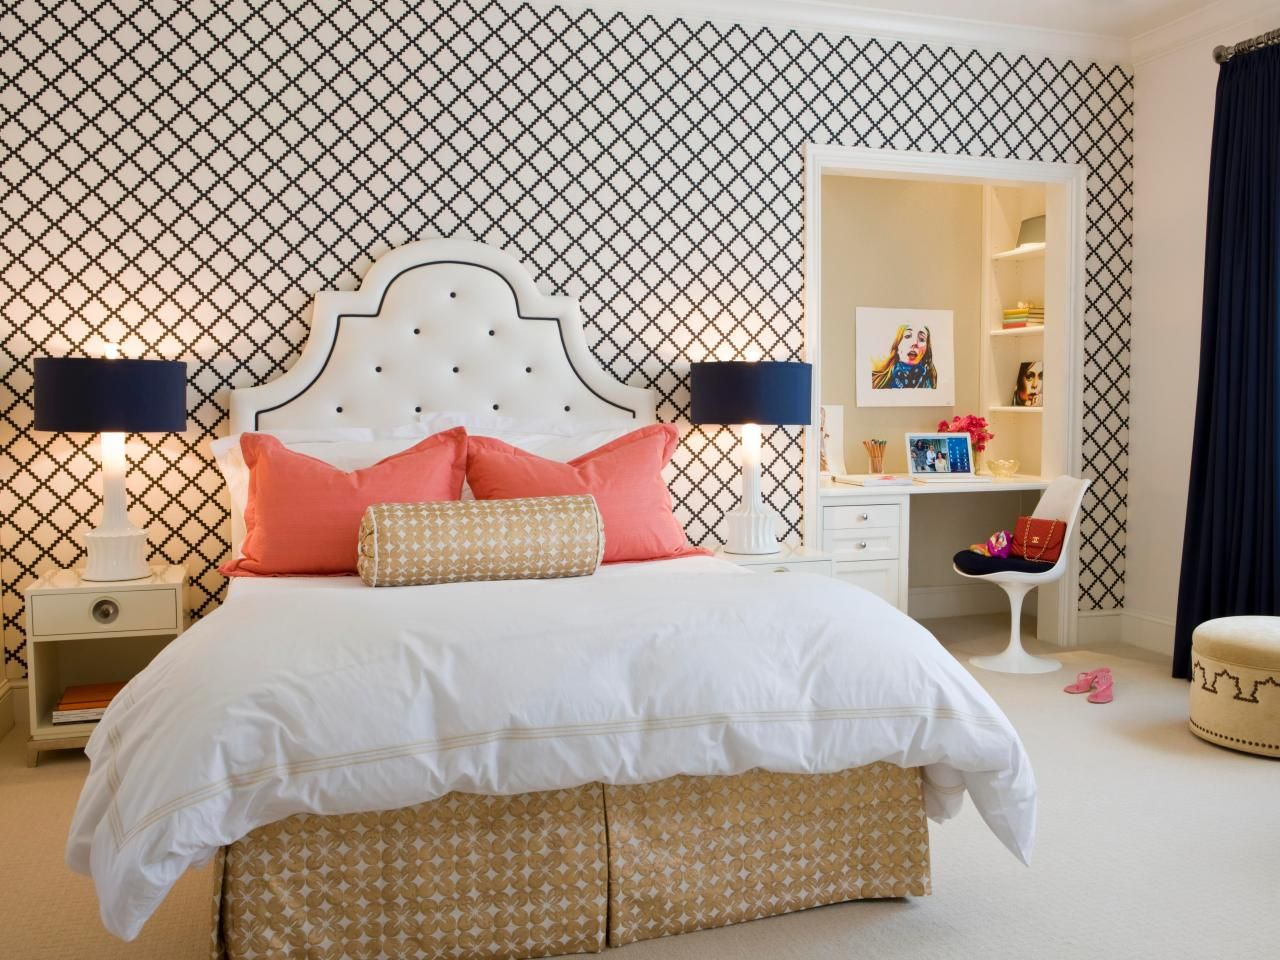 Original_Preppy-Style-Massucco-Warner-Miller-Interior-Design-Girls-Room_s4x3.jpg.rend.hgtvcom.1280.960.jpeg (1280×960)